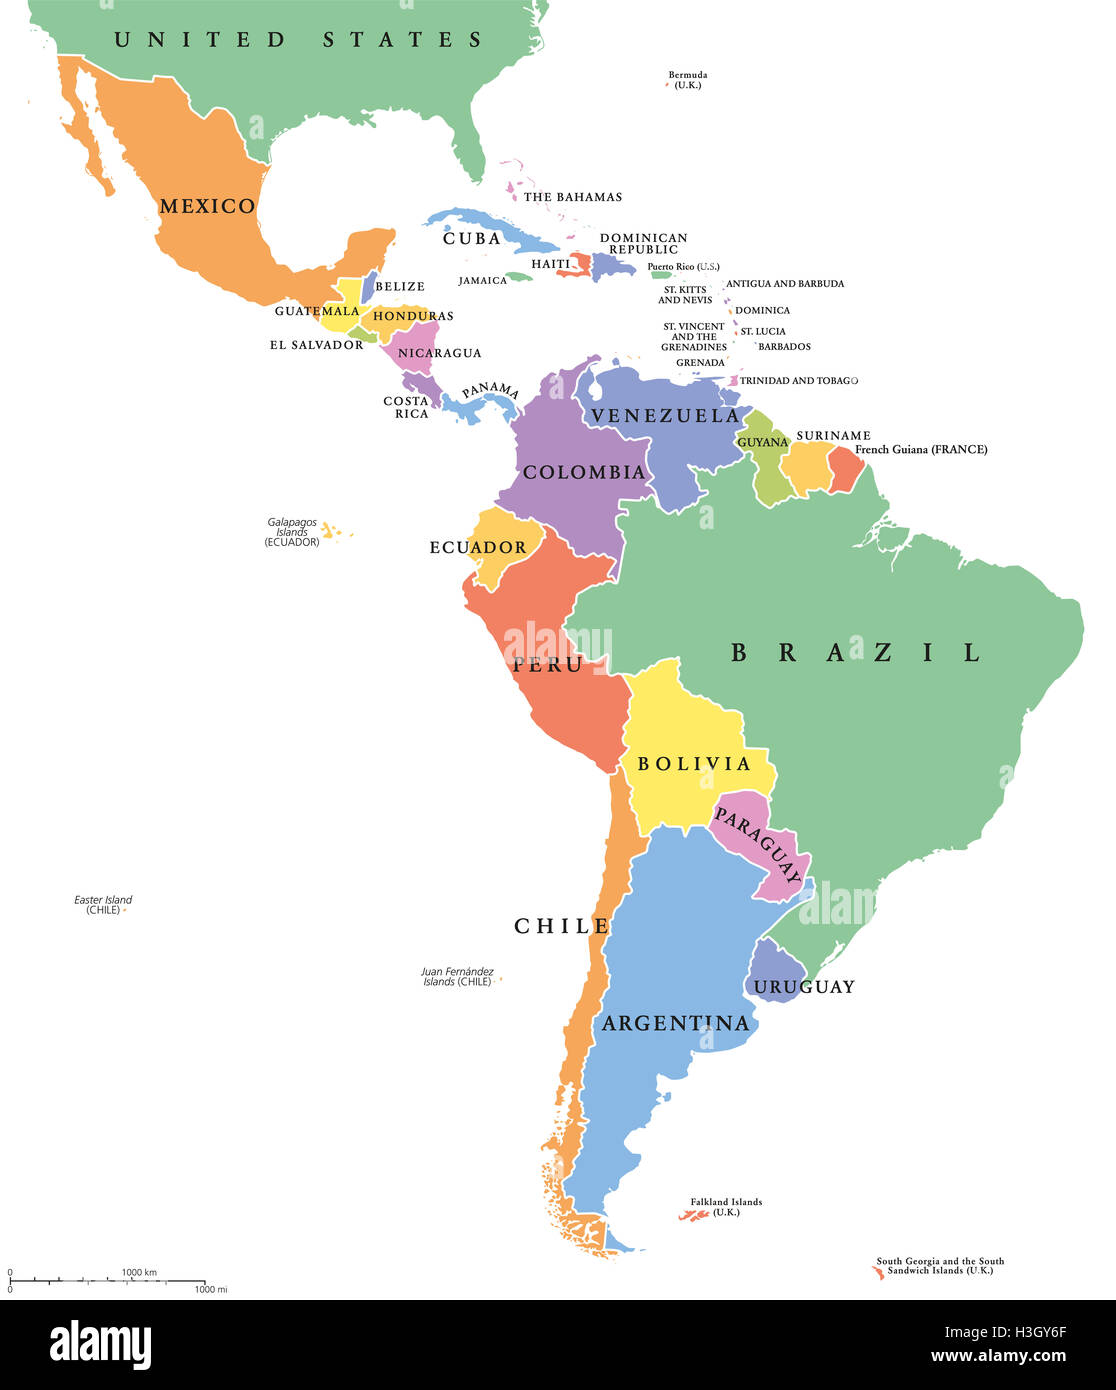 Latin america single states political map countries in different latin america single states political map countries in different colors with national borders and english country names gumiabroncs Choice Image